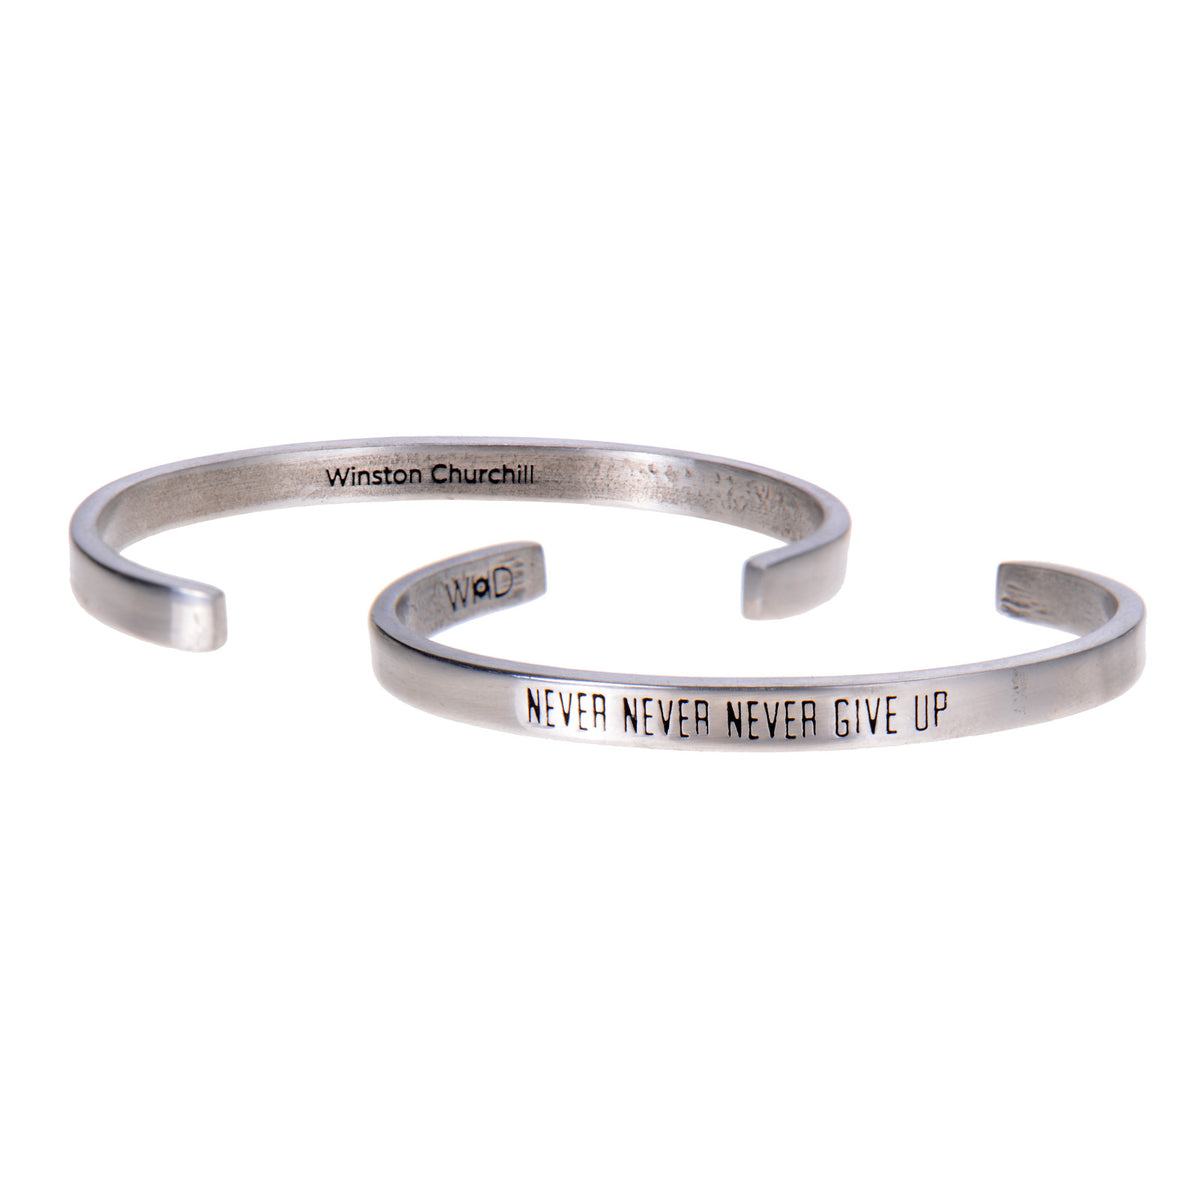 Never Never Never Give Up Winston Churchill Quotable Cuff Bracelet - Whitney Howard Designs